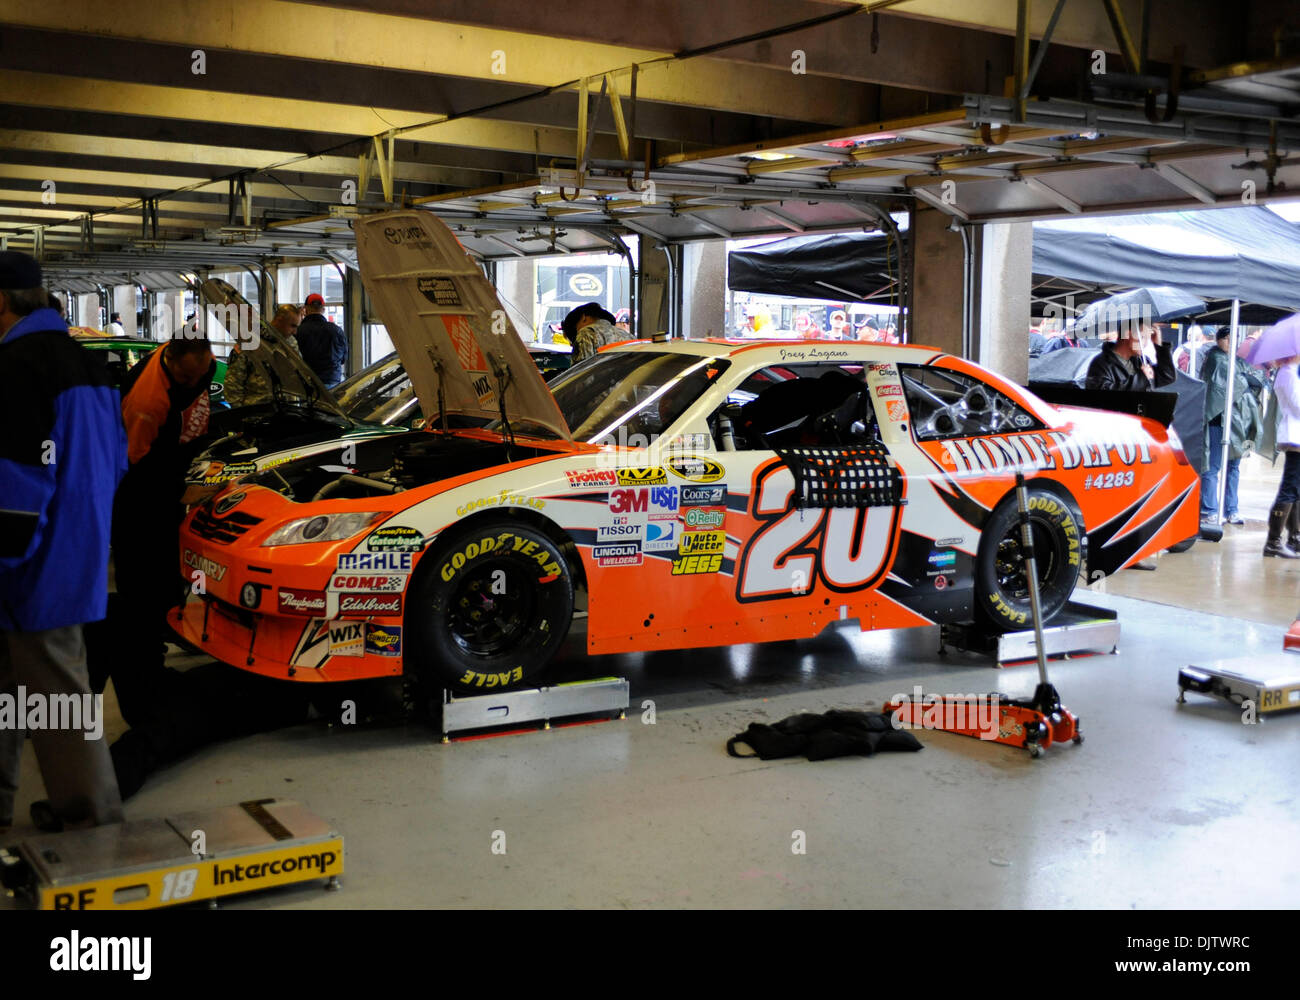 The 20 Home Depot Car Of Joey Logano In The Garage During A Rain